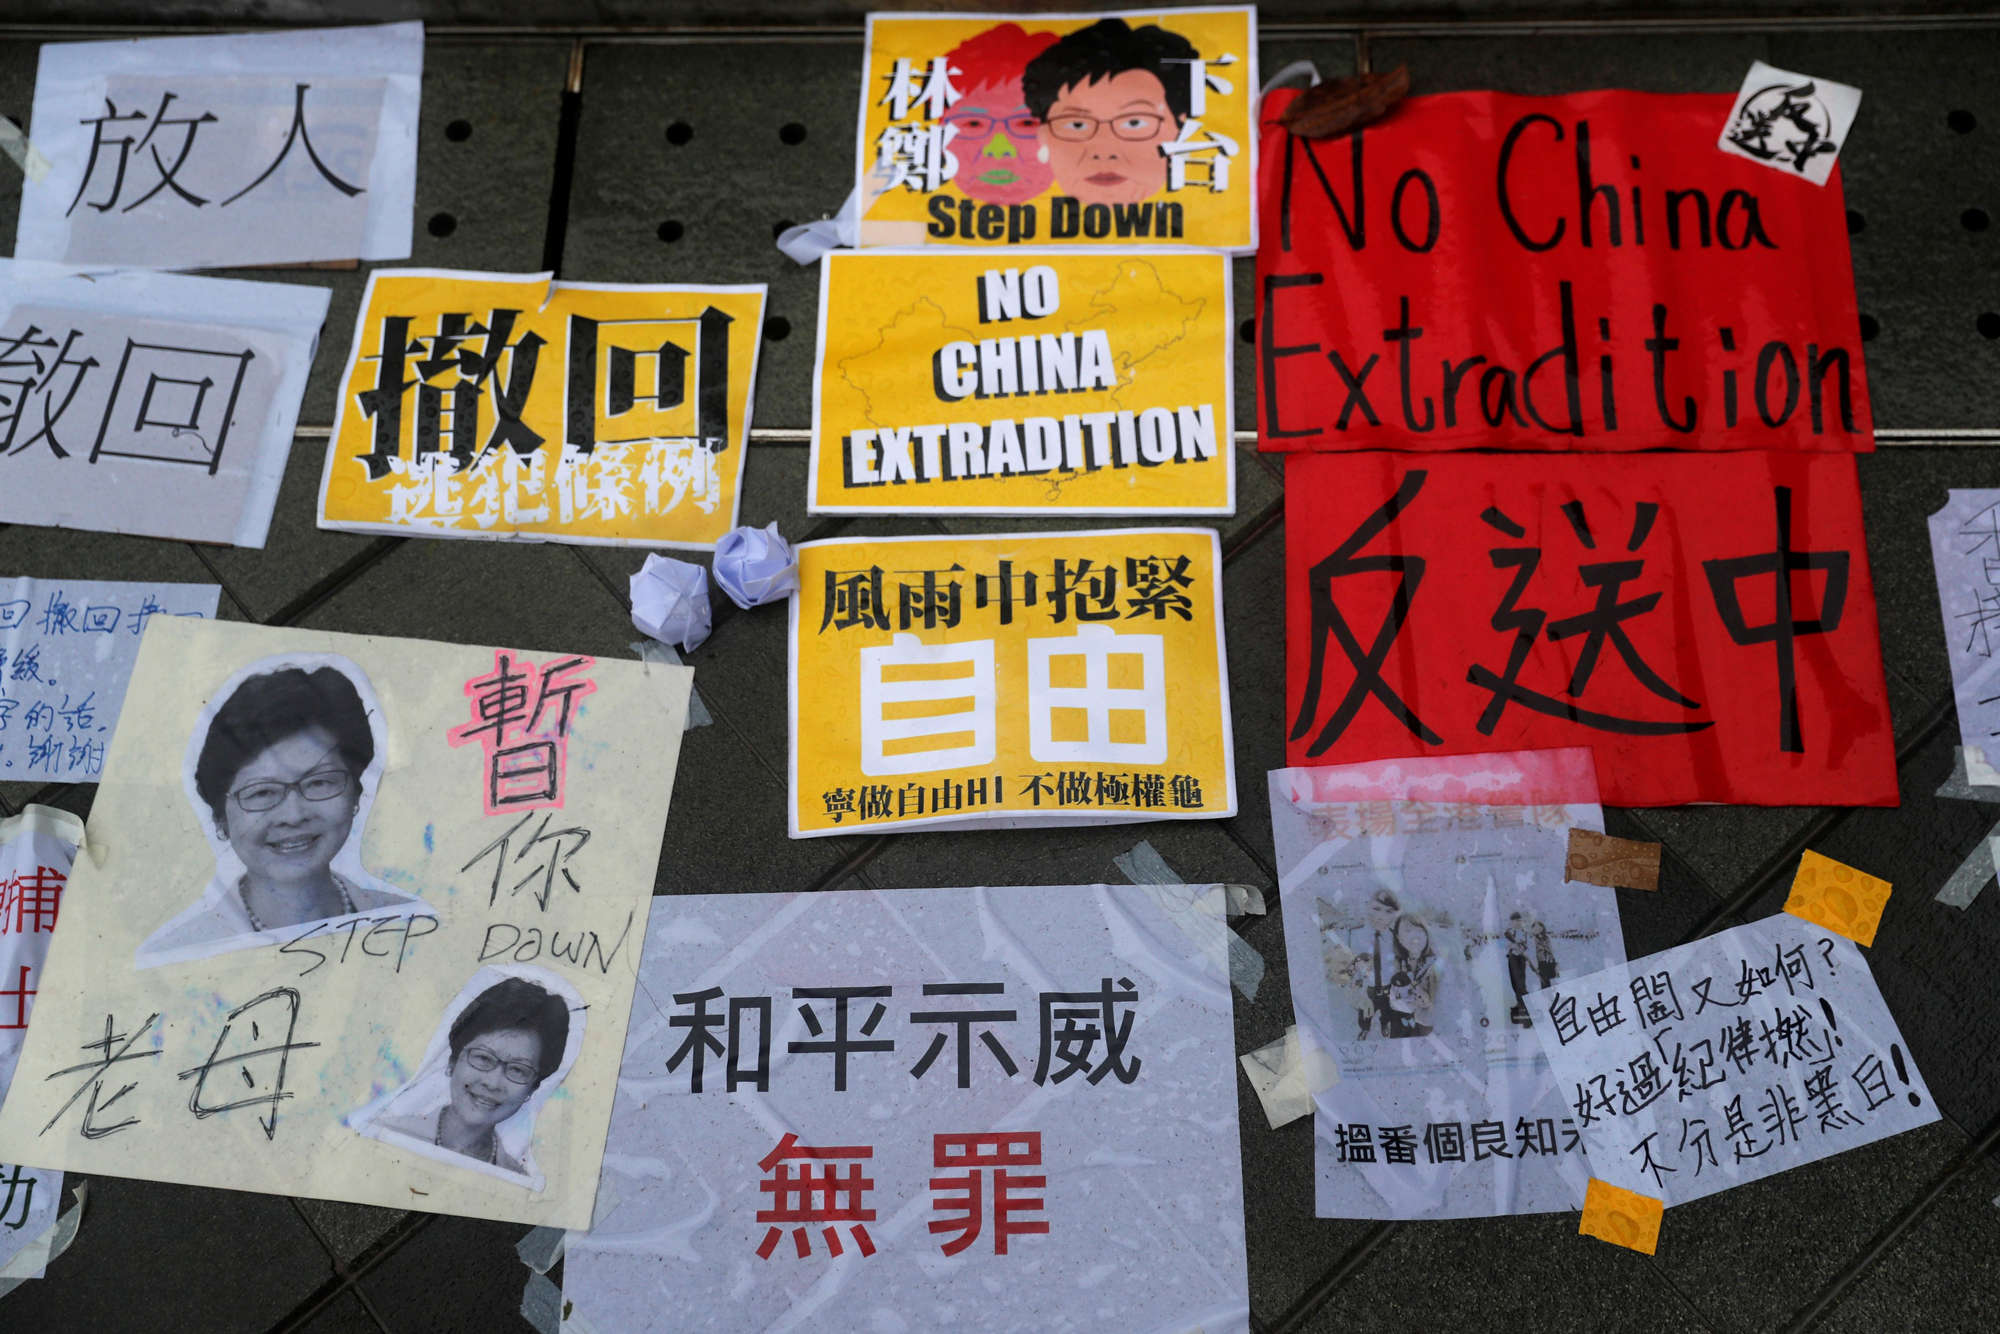 Messages are seen at a demonstration in Hong Kong on Monday demanding that Chief Executive Carrie Lam withdraw a controversial extradition bill and step down.   REUTERS